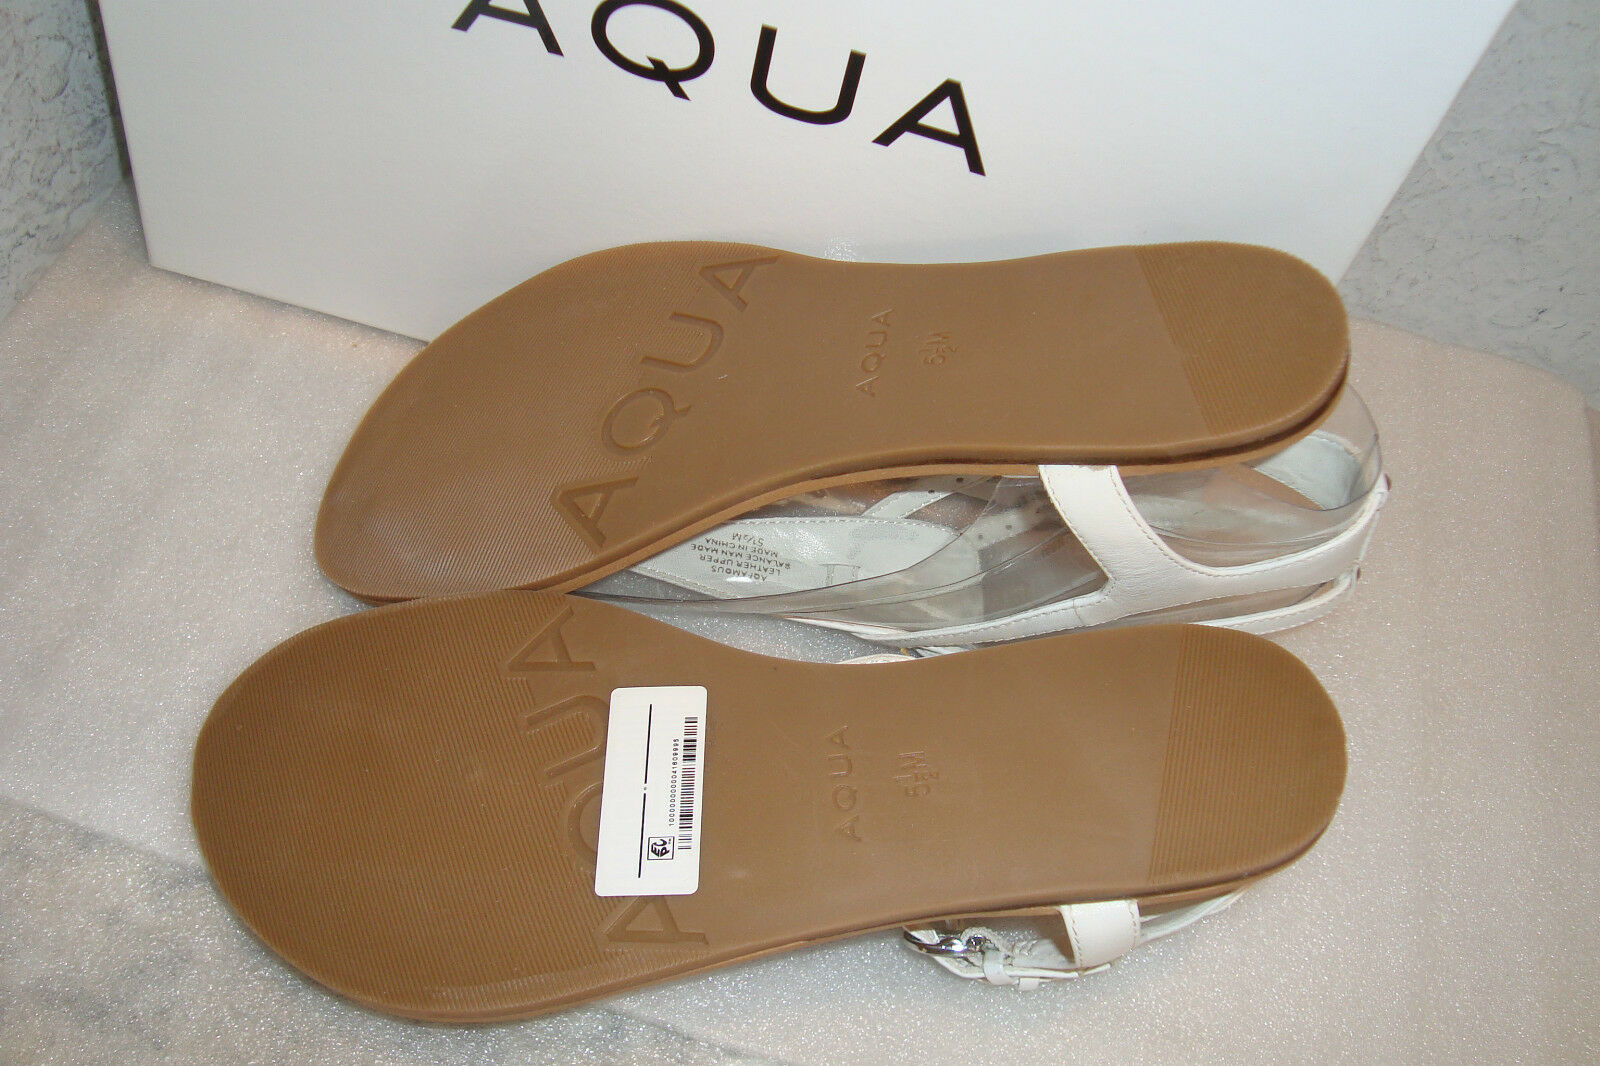 Aqua Womens NWB Famous White Leather Sandals shoes 5.5 5.5 5.5 MED NEW 46145e